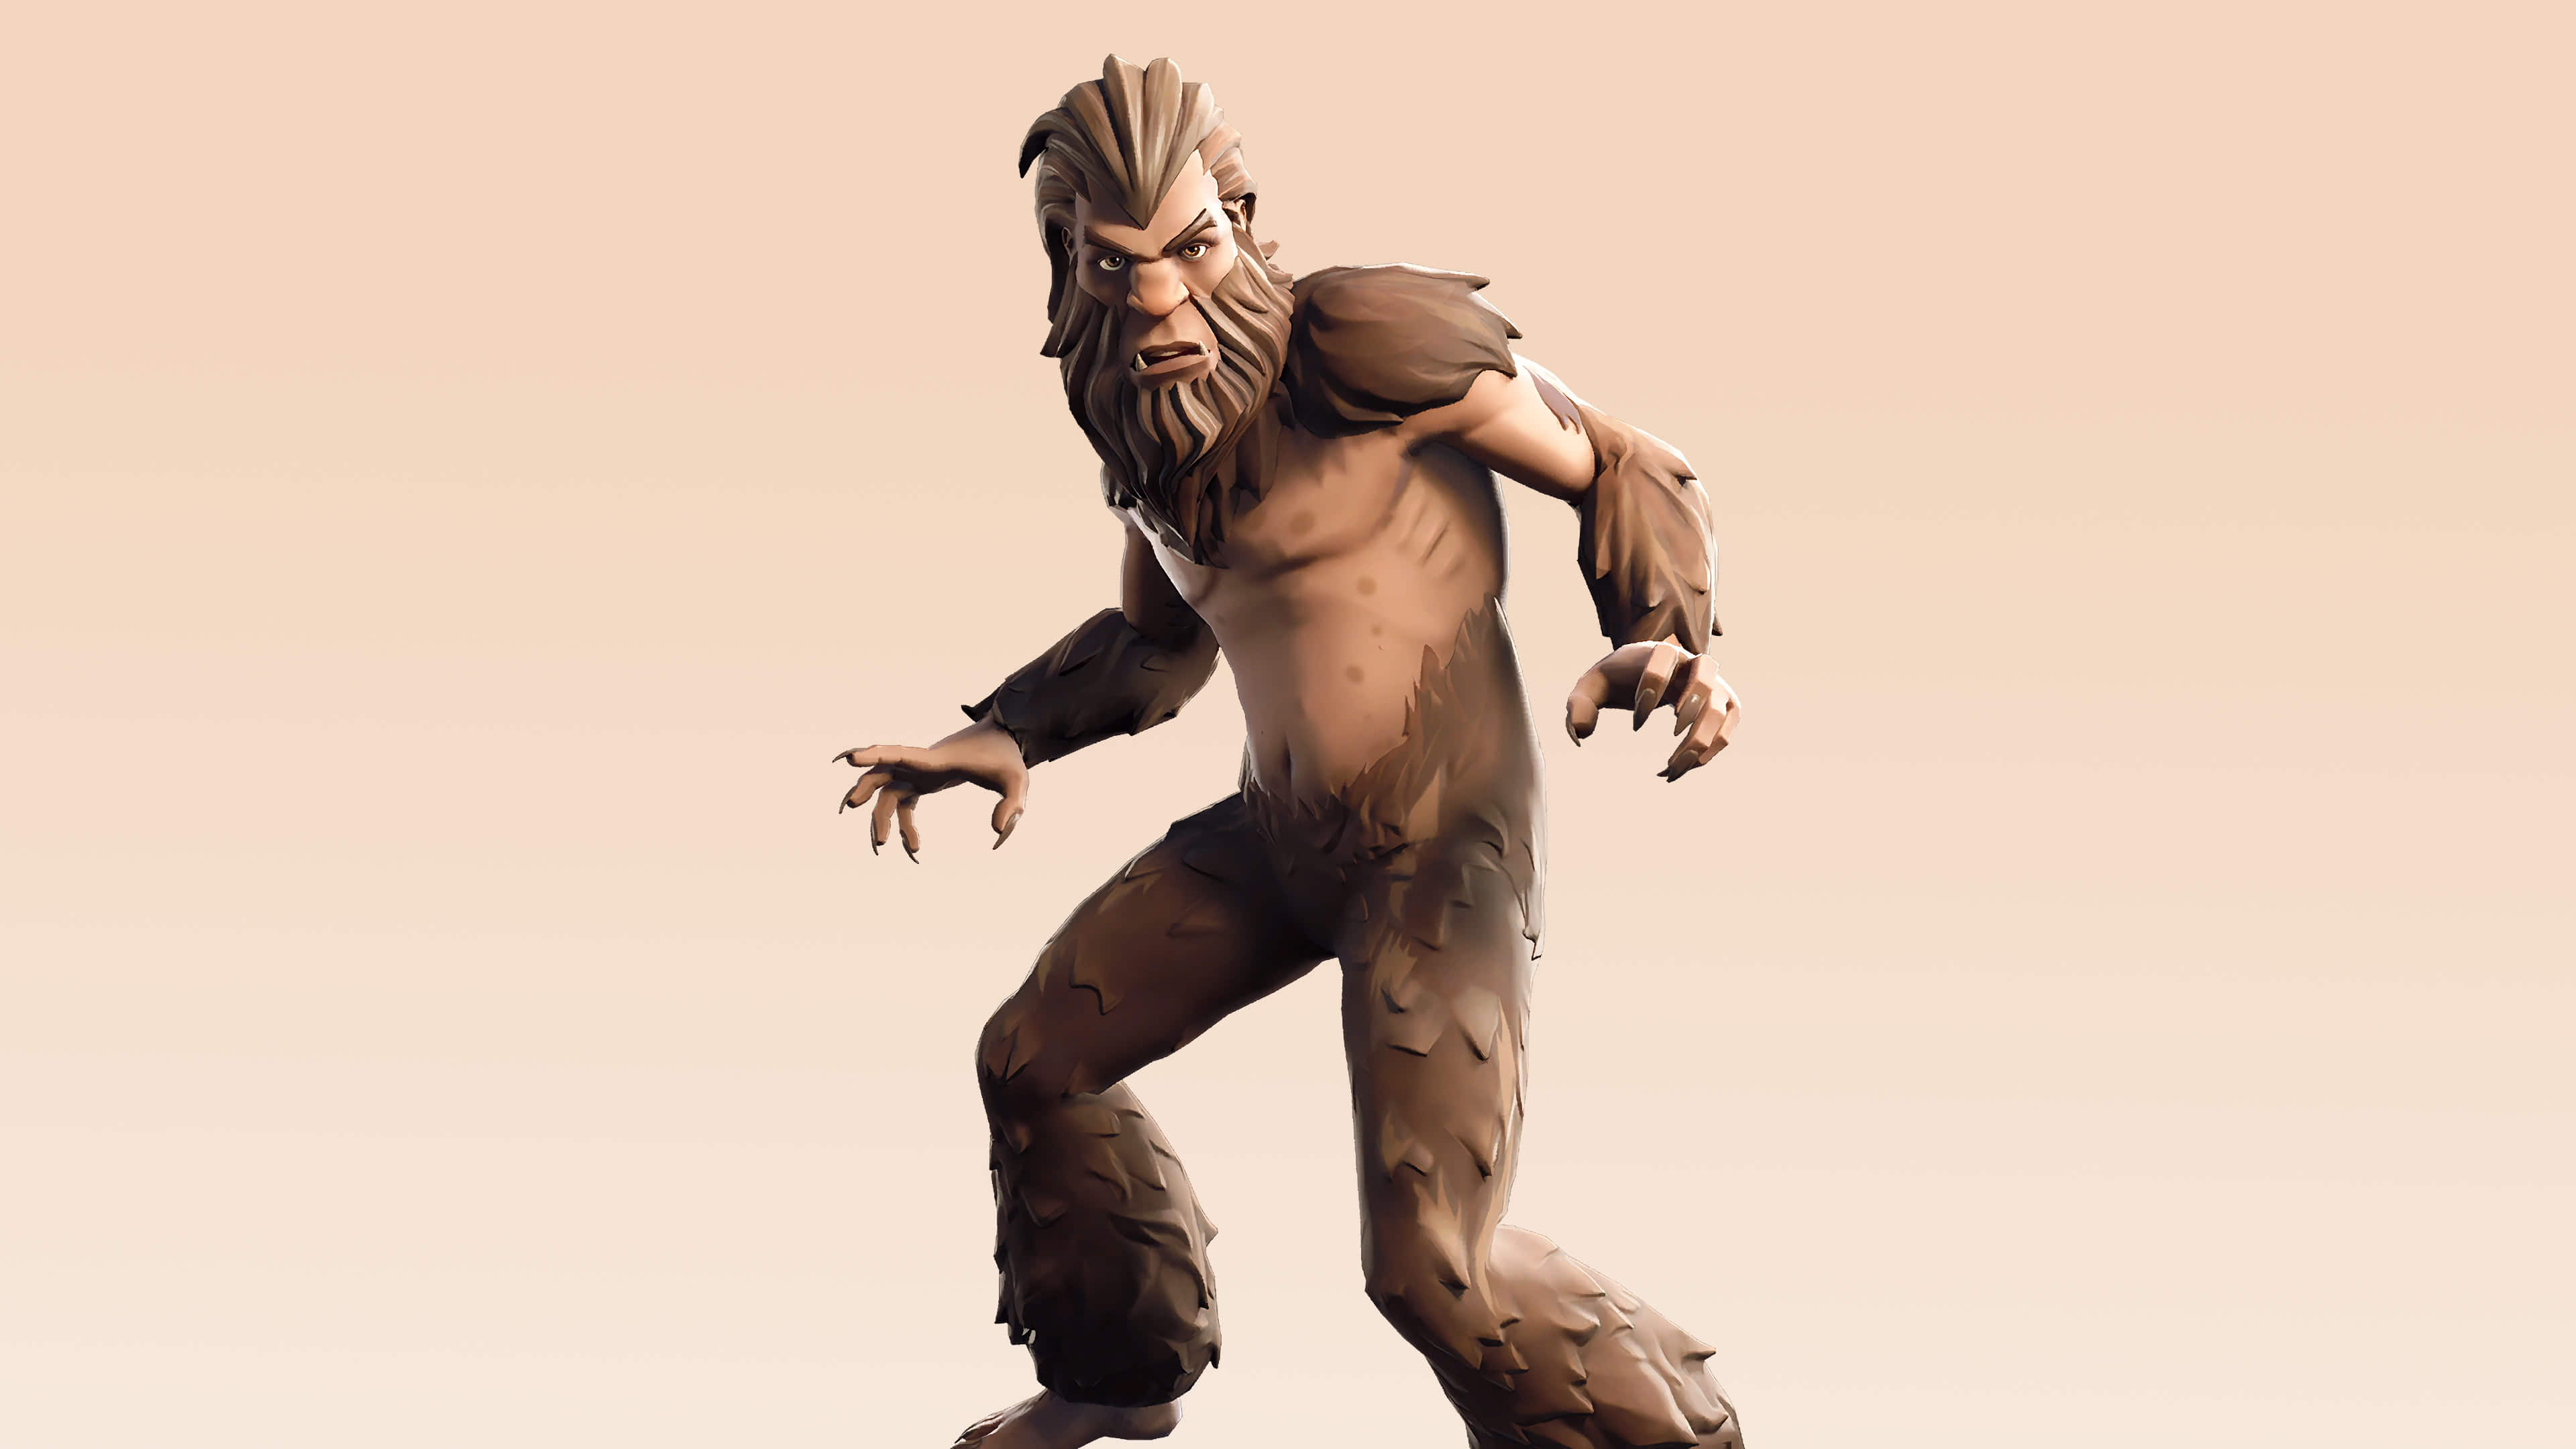 fortnite bigfoot skin outfit uhd 4k wallpaper